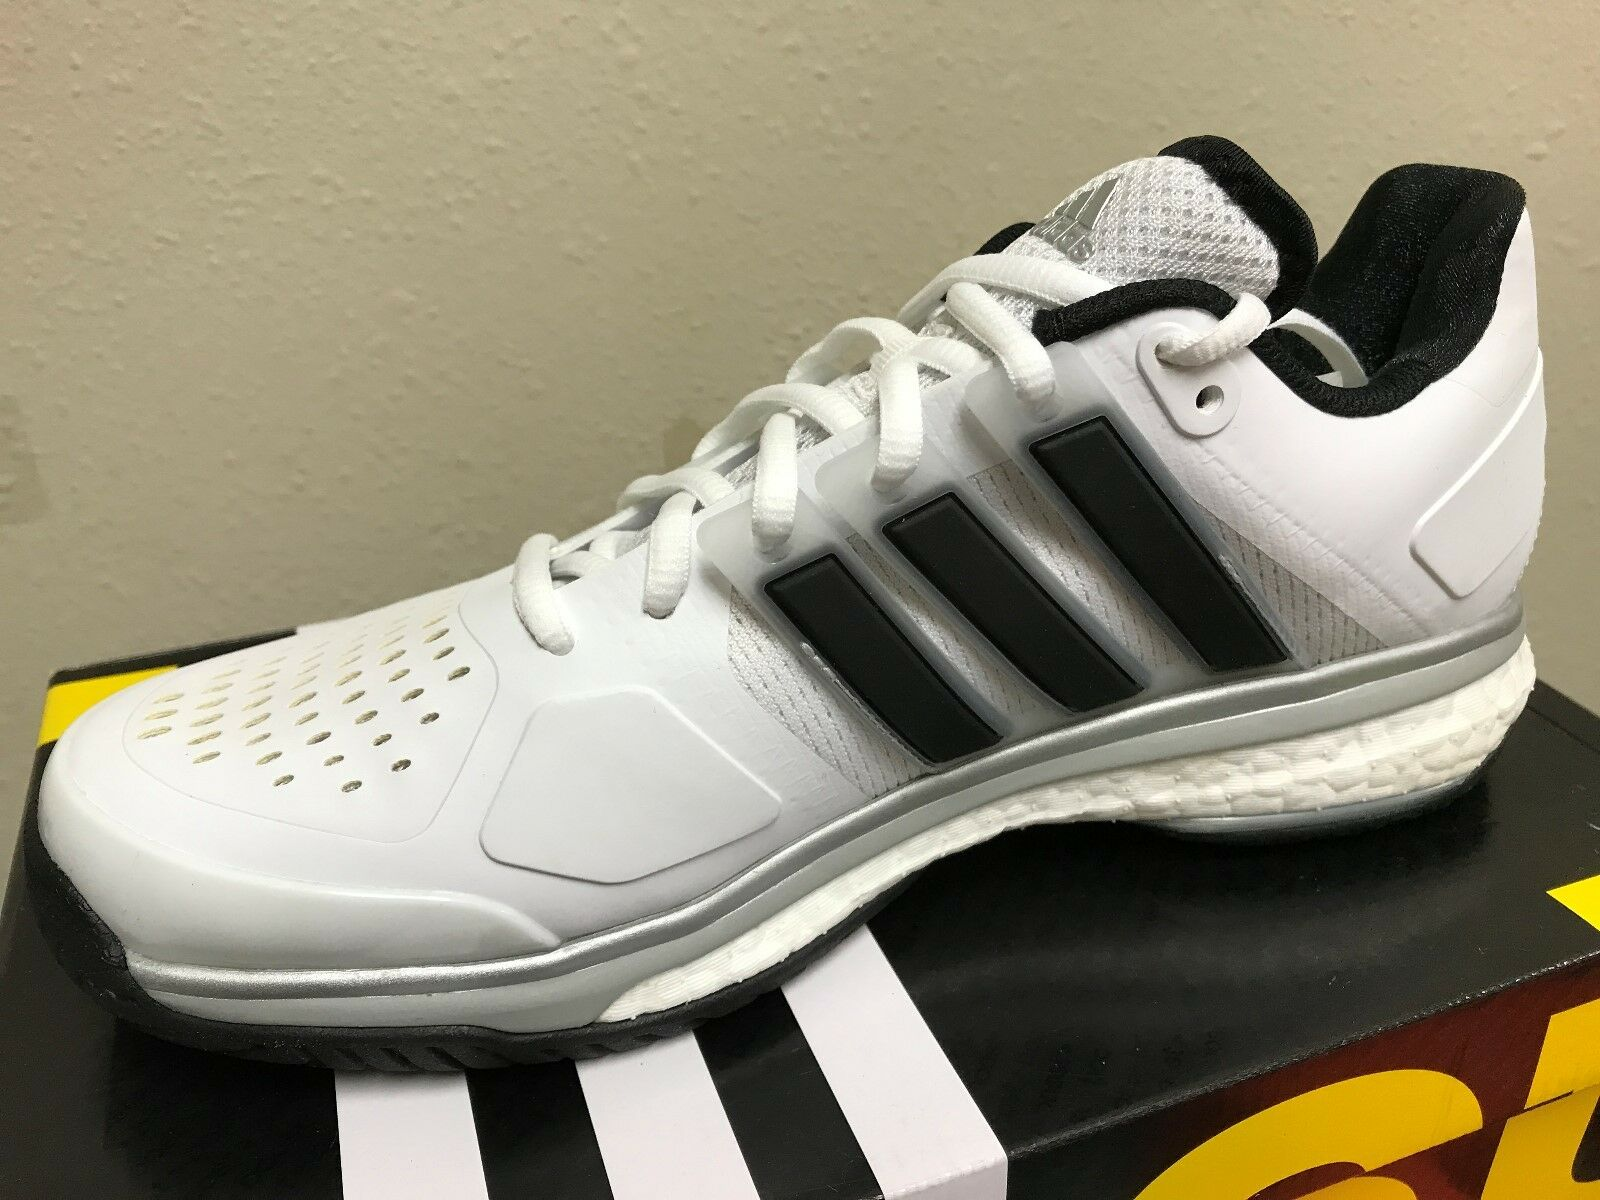 Adidas Shoes Men's Energy Boost Tennis Shoes Adidas Style AQ2293 66657f